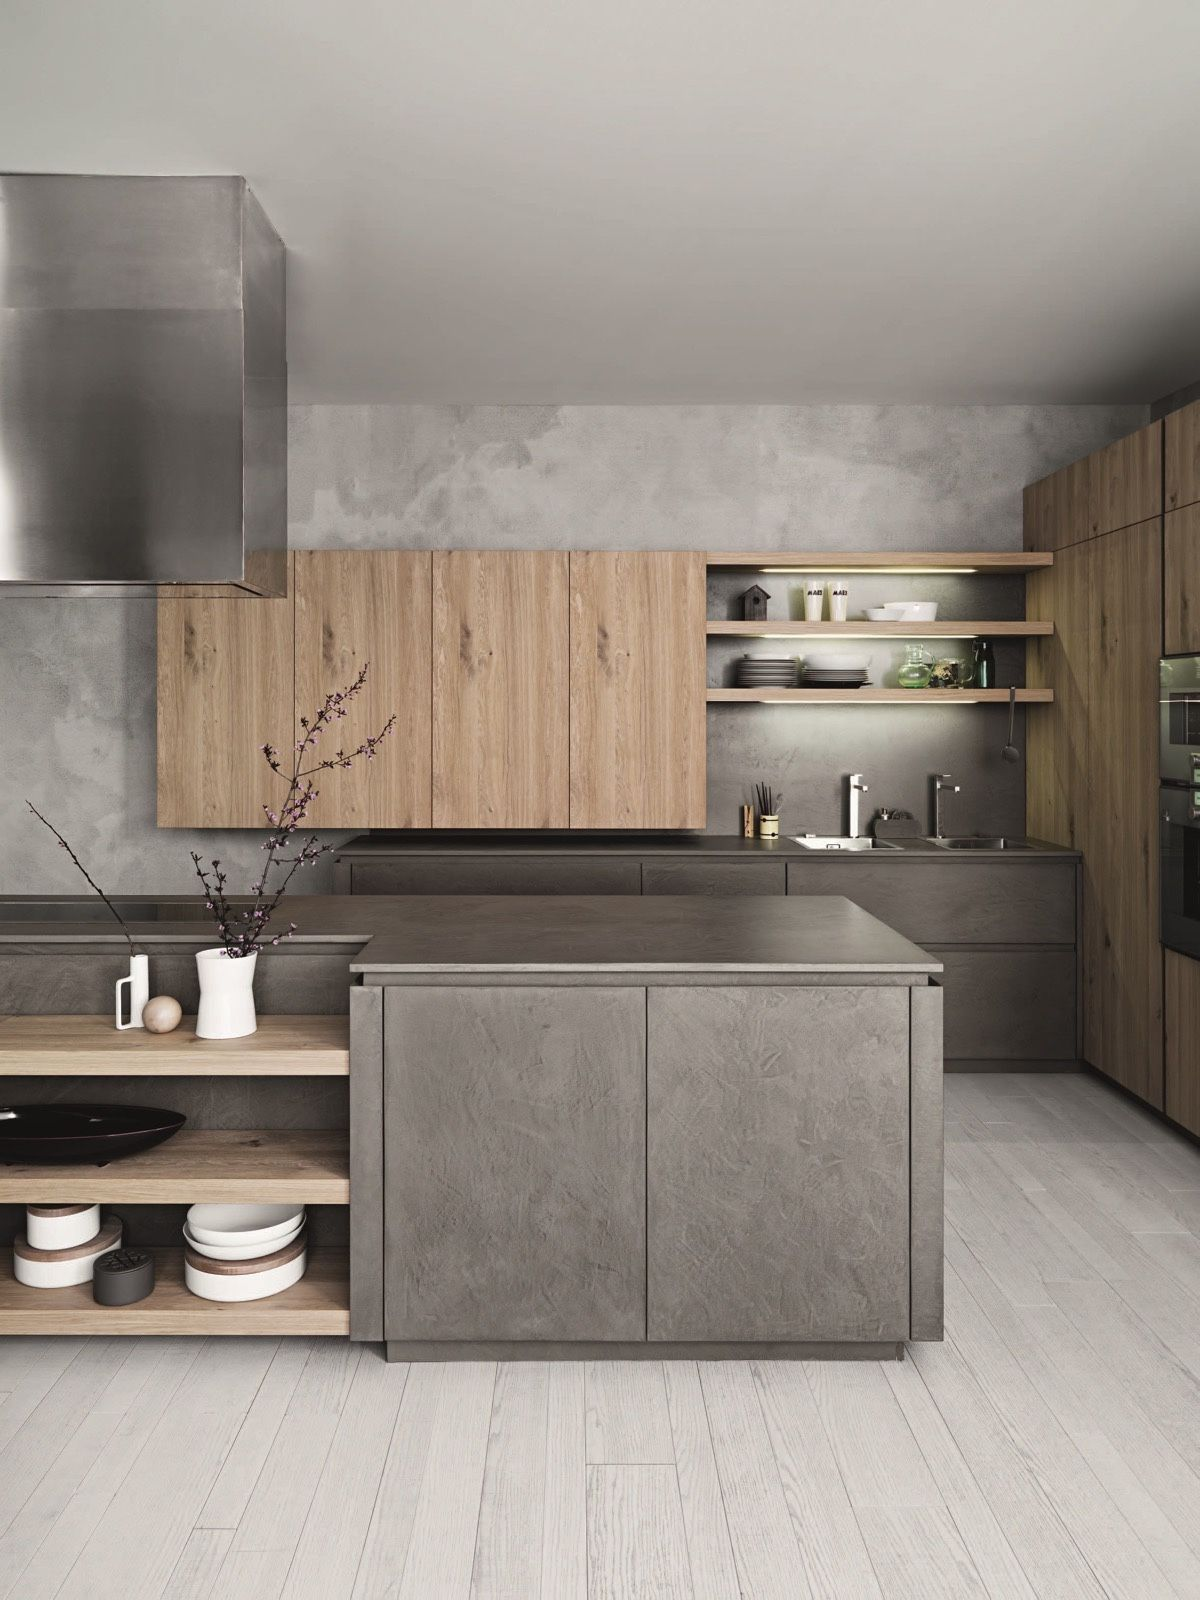 40 gorgeous grey kitchens kitchen designs pinterest gray often used in bedroom design the soft appeal of grey can cool many interiors yet one secret power remains its subtle transformation of kitchens